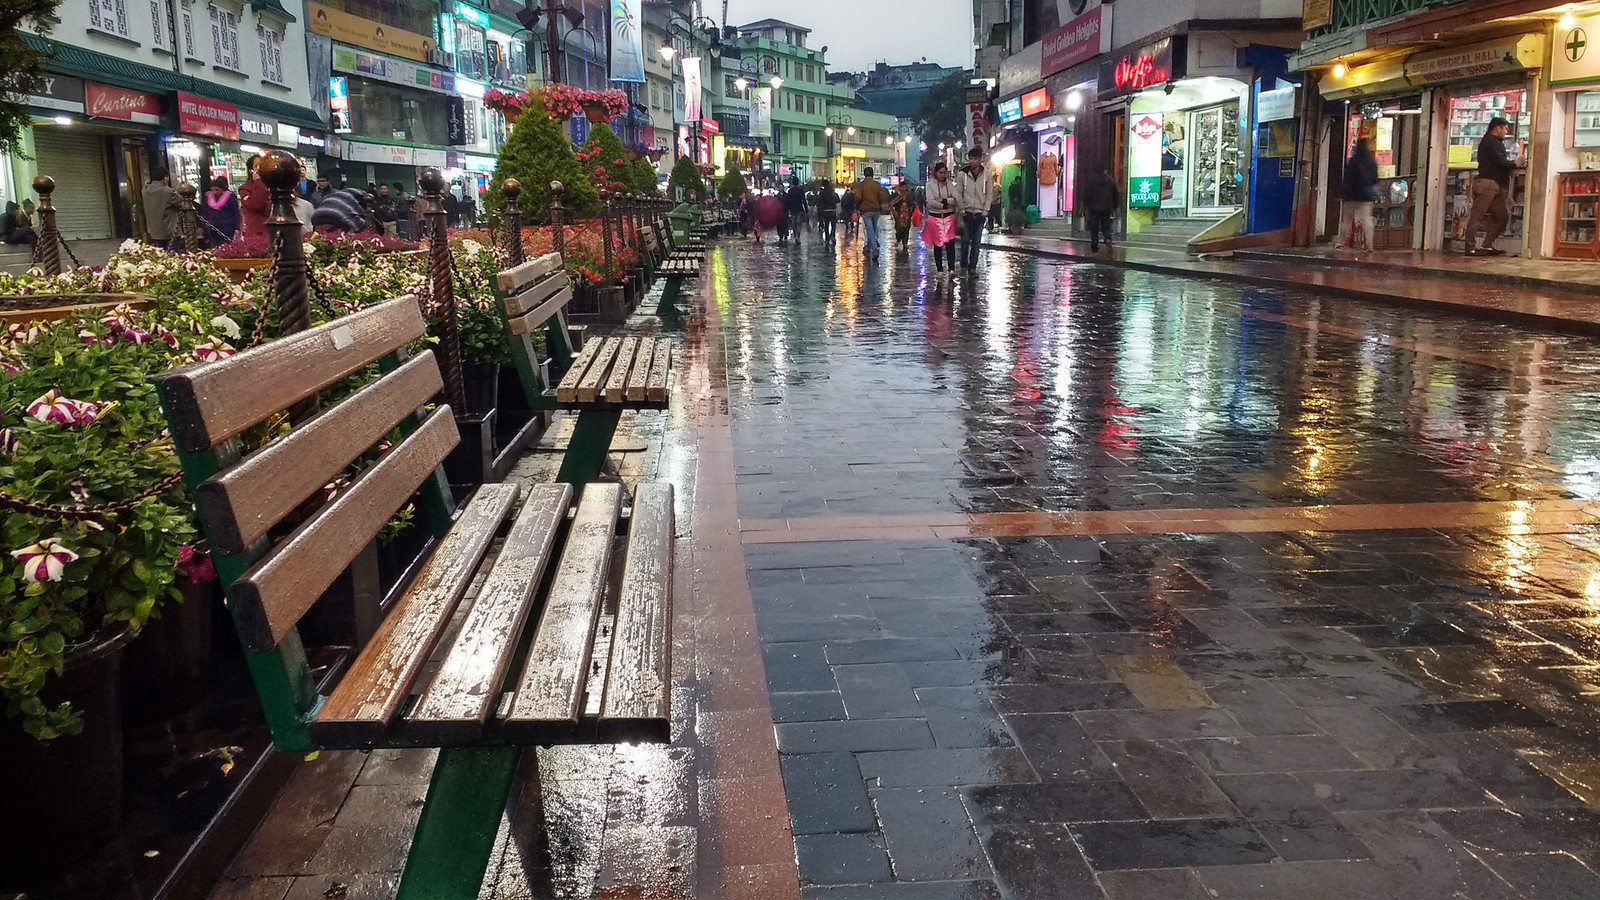 Benches in the rain